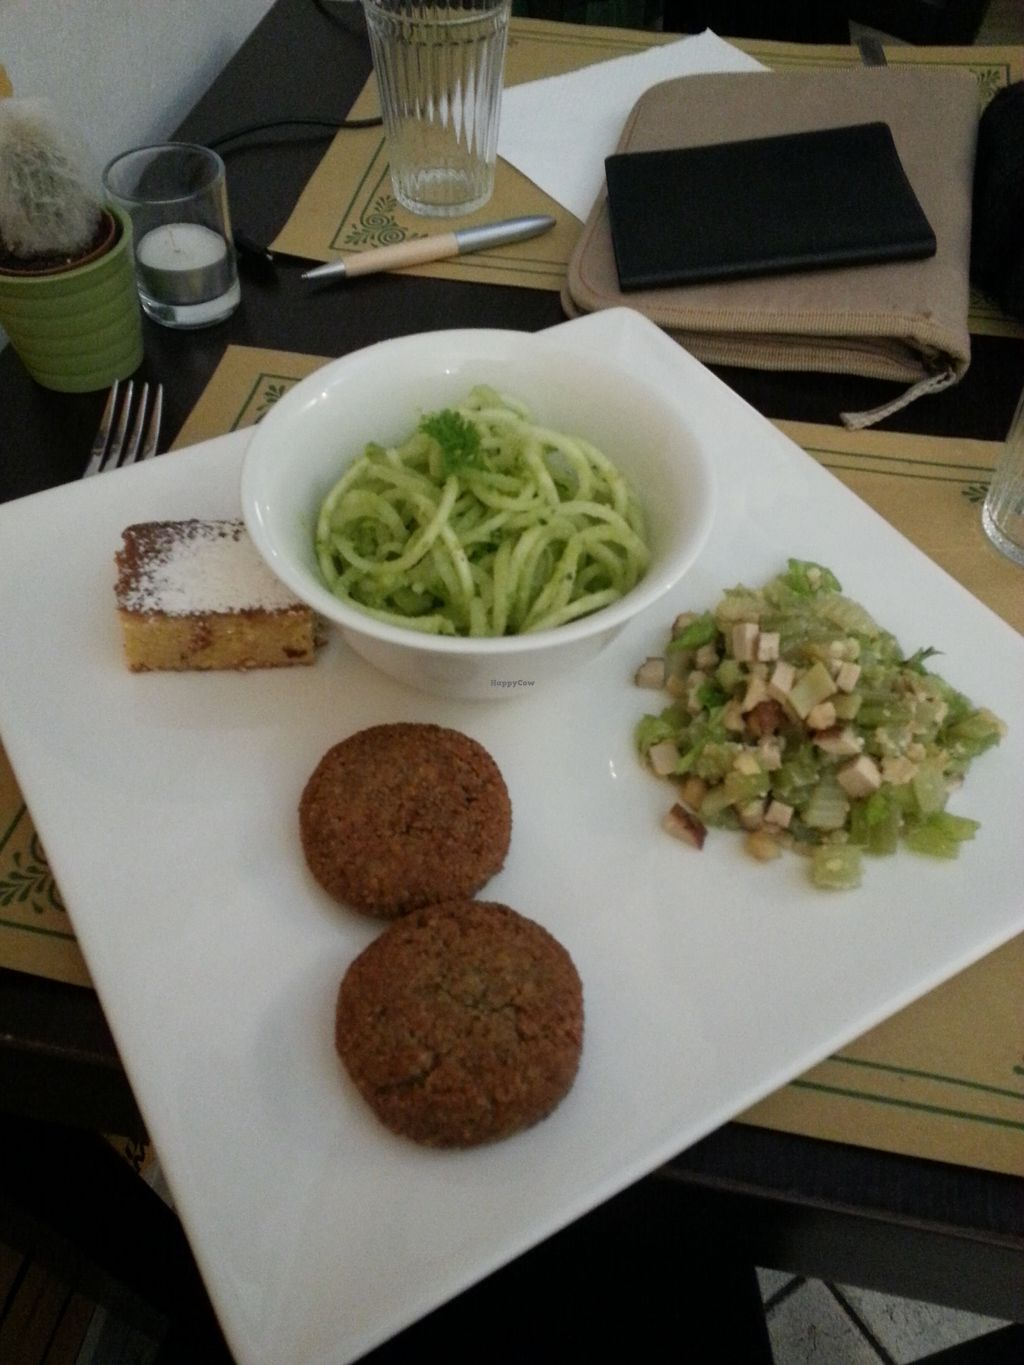 "Photo of Un'Altra Idea  by <a href=""/members/profile/ManueEmmaLeTllc"">ManueEmmaLeTllc</a> <br/>Falafels, raw zucchini spaghetti with pesto, smoked tofu salad, and almond cake <br/> August 9, 2017  - <a href='/contact/abuse/image/83717/290852'>Report</a>"